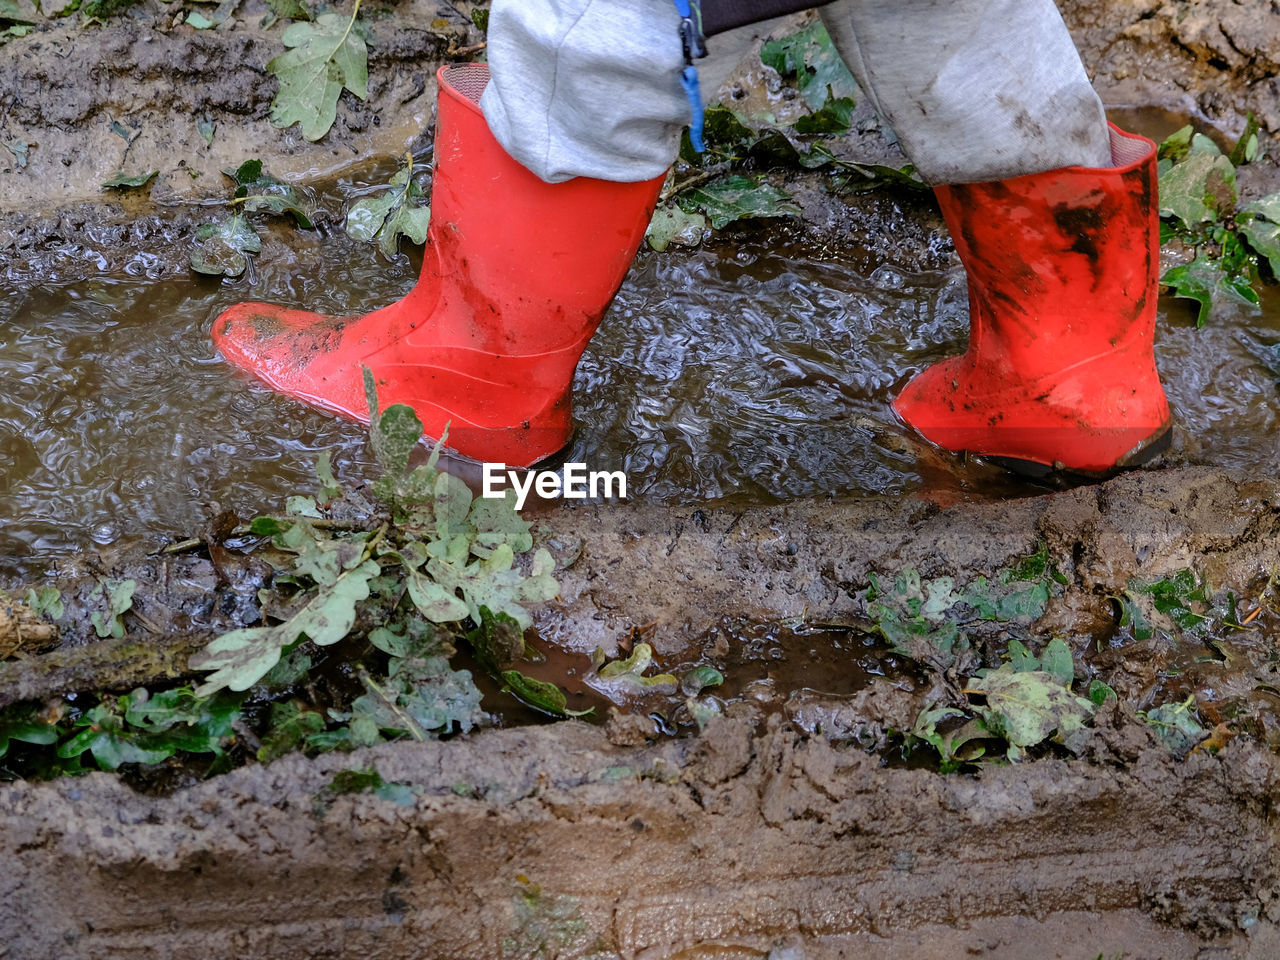 low section, one person, human leg, body part, shoe, human body part, real people, day, standing, lifestyles, nature, outdoors, unrecognizable person, plant, wet, land, red, boot, dirt, mud, dirty, messy, human foot, human limb